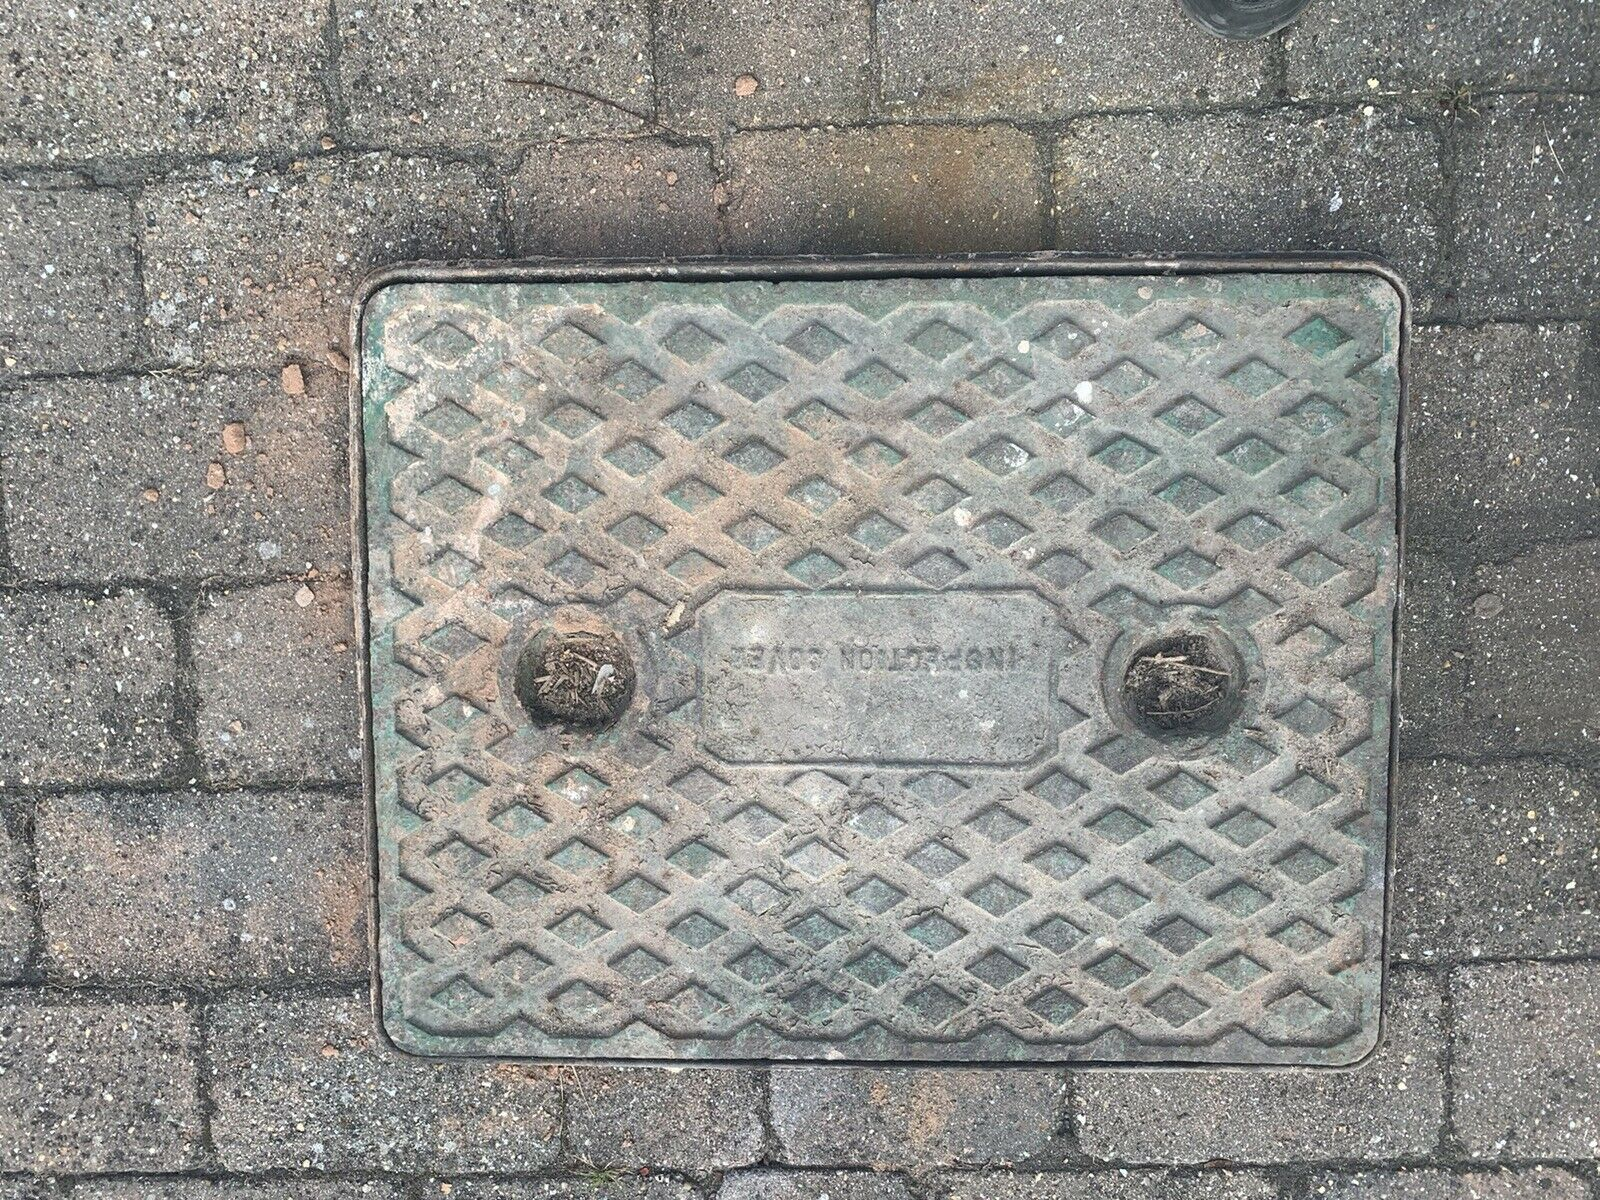 inspection cover - Cast Iron